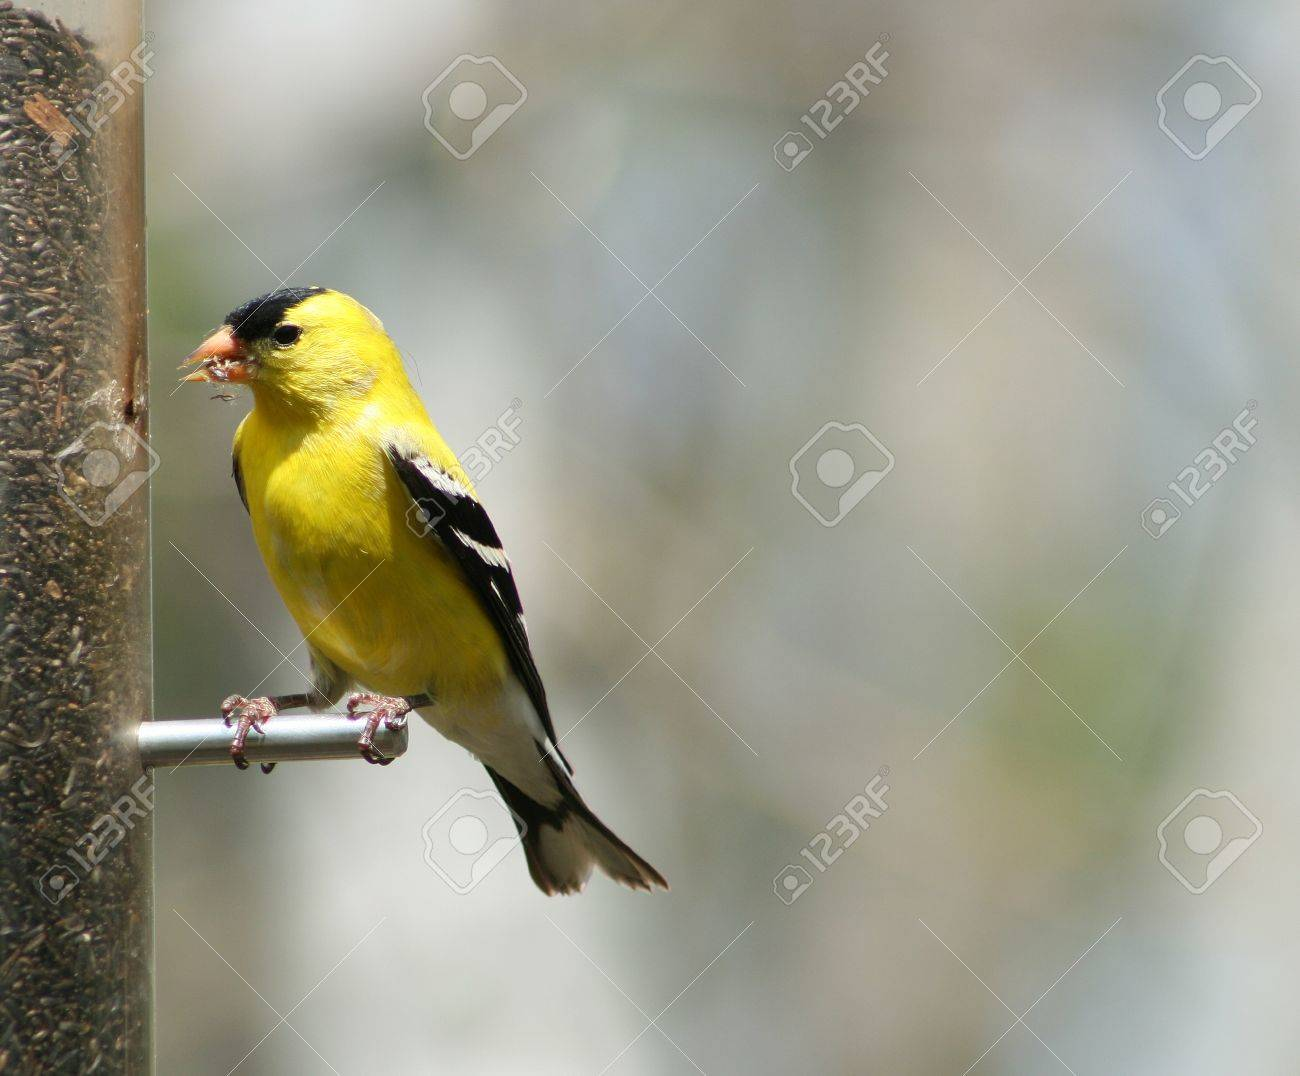 A male American Goldfinch perched on a bird feeder in spring